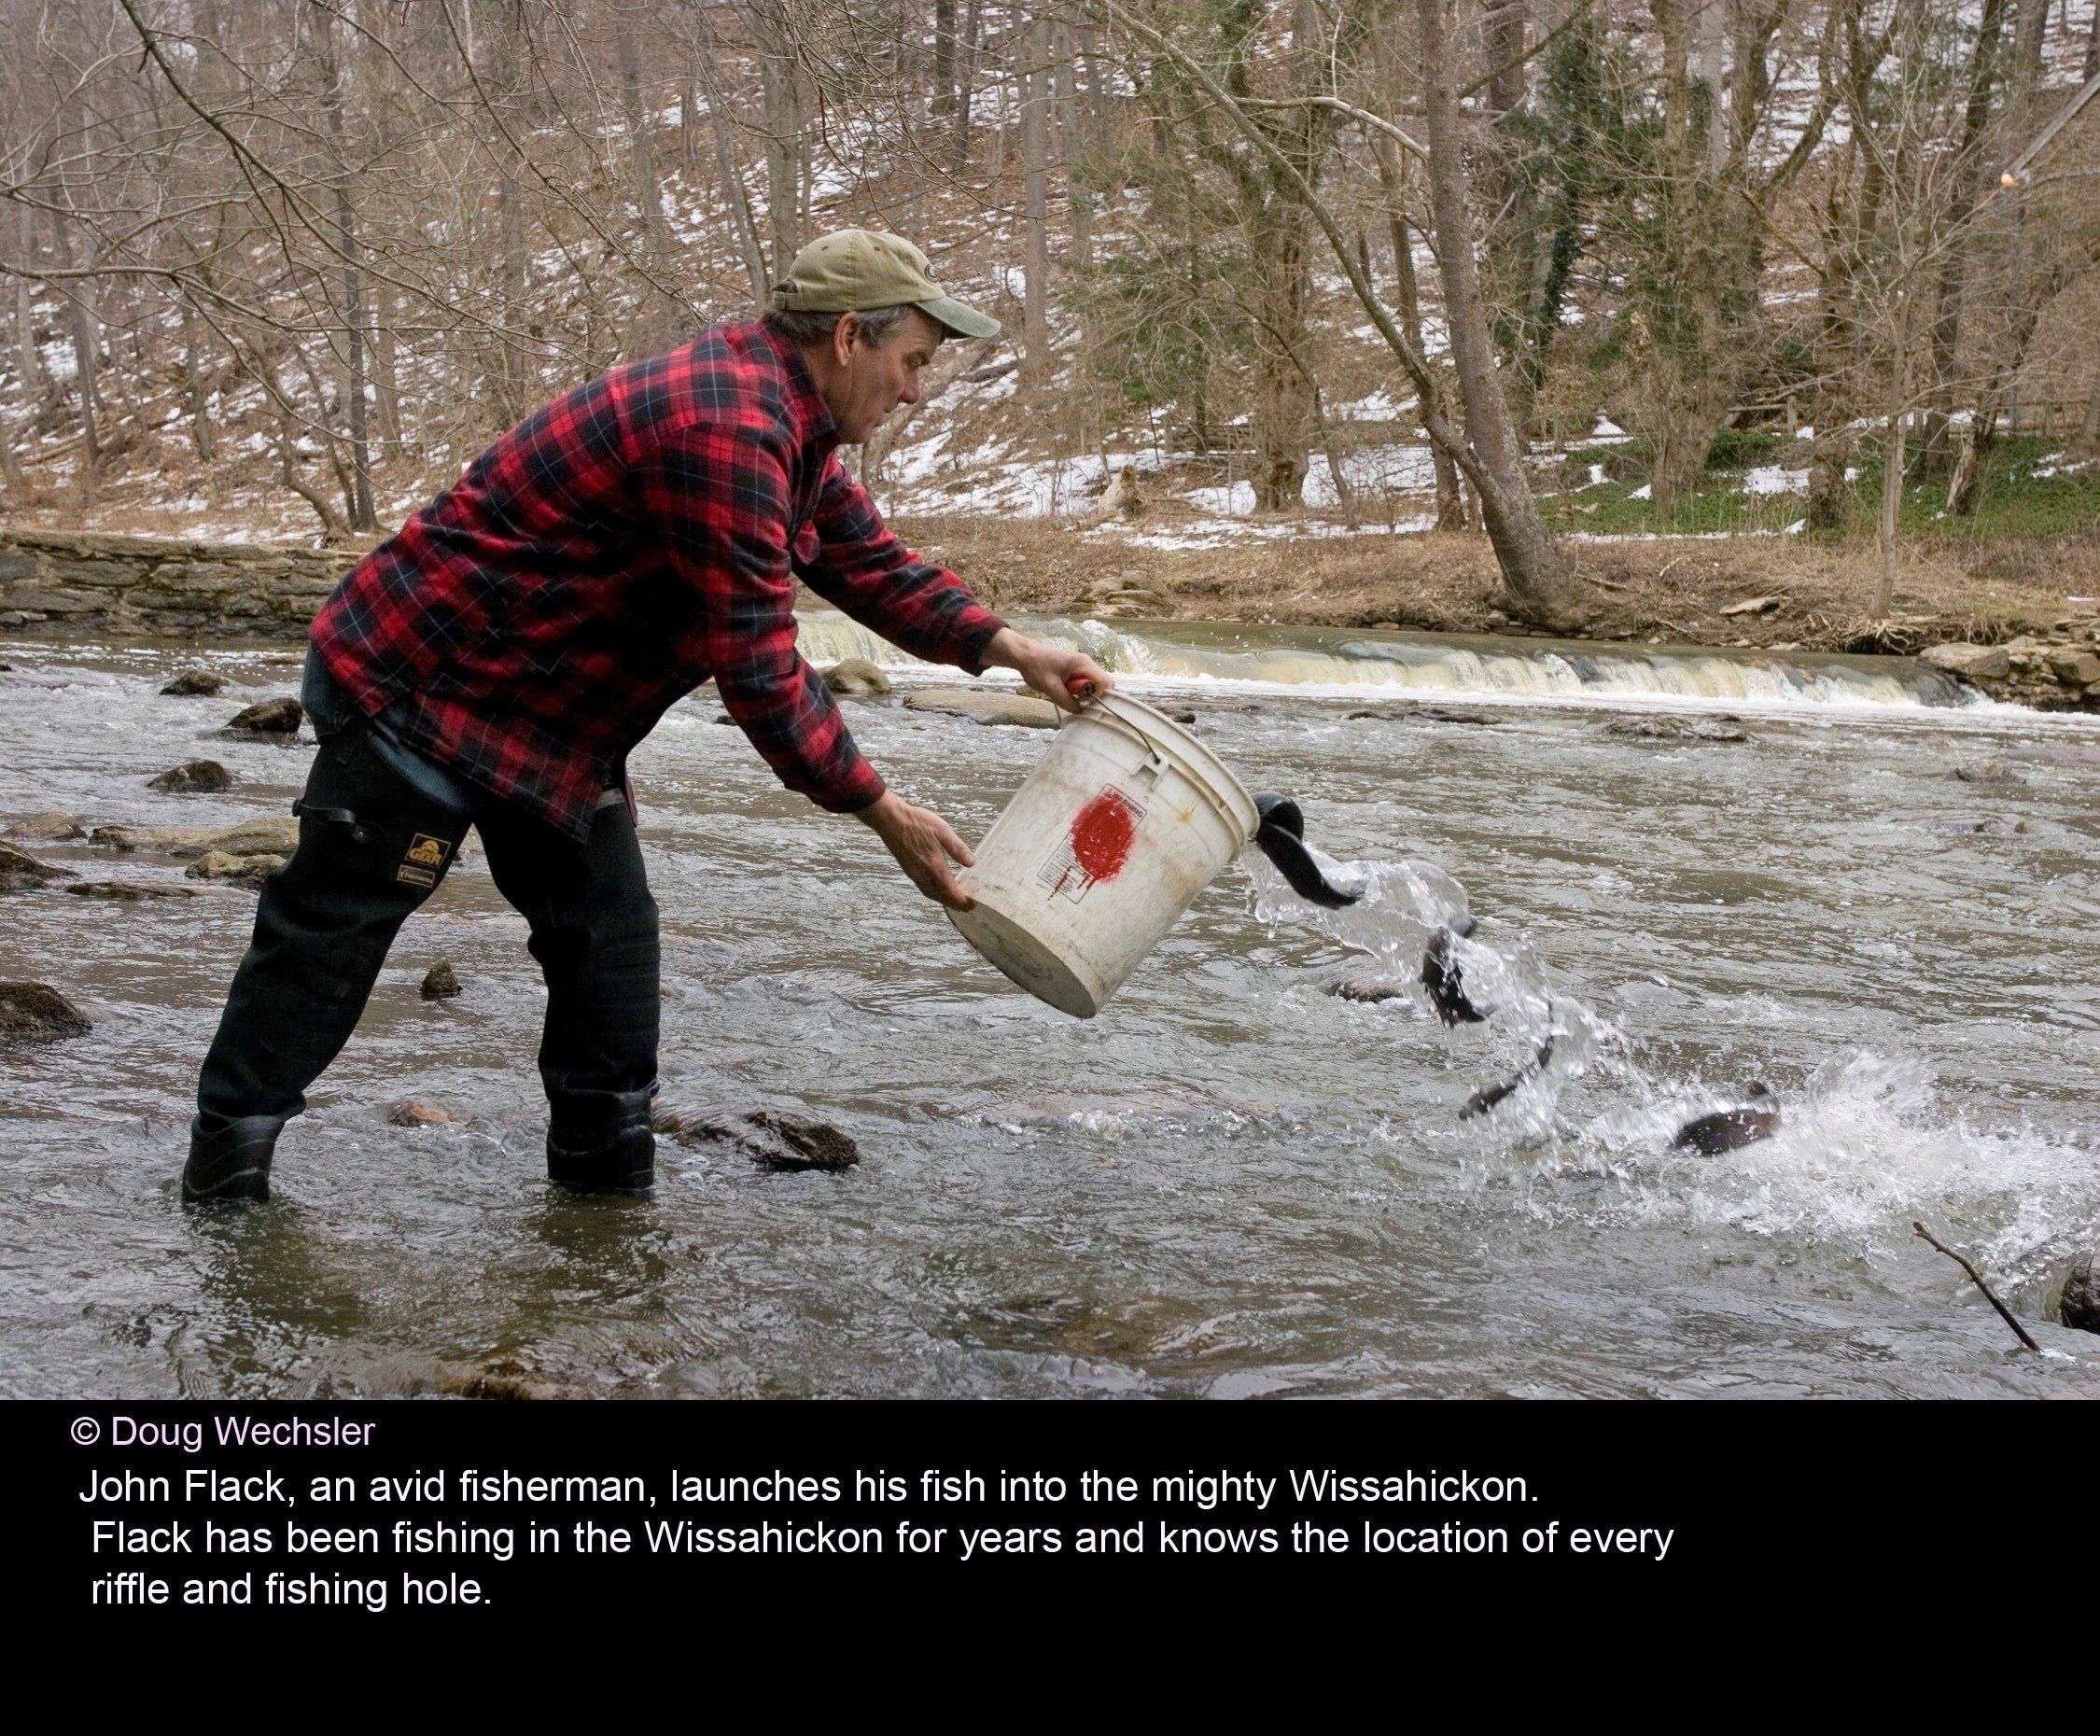 Director's Notebook: Trout Fishing in the Wissahickon